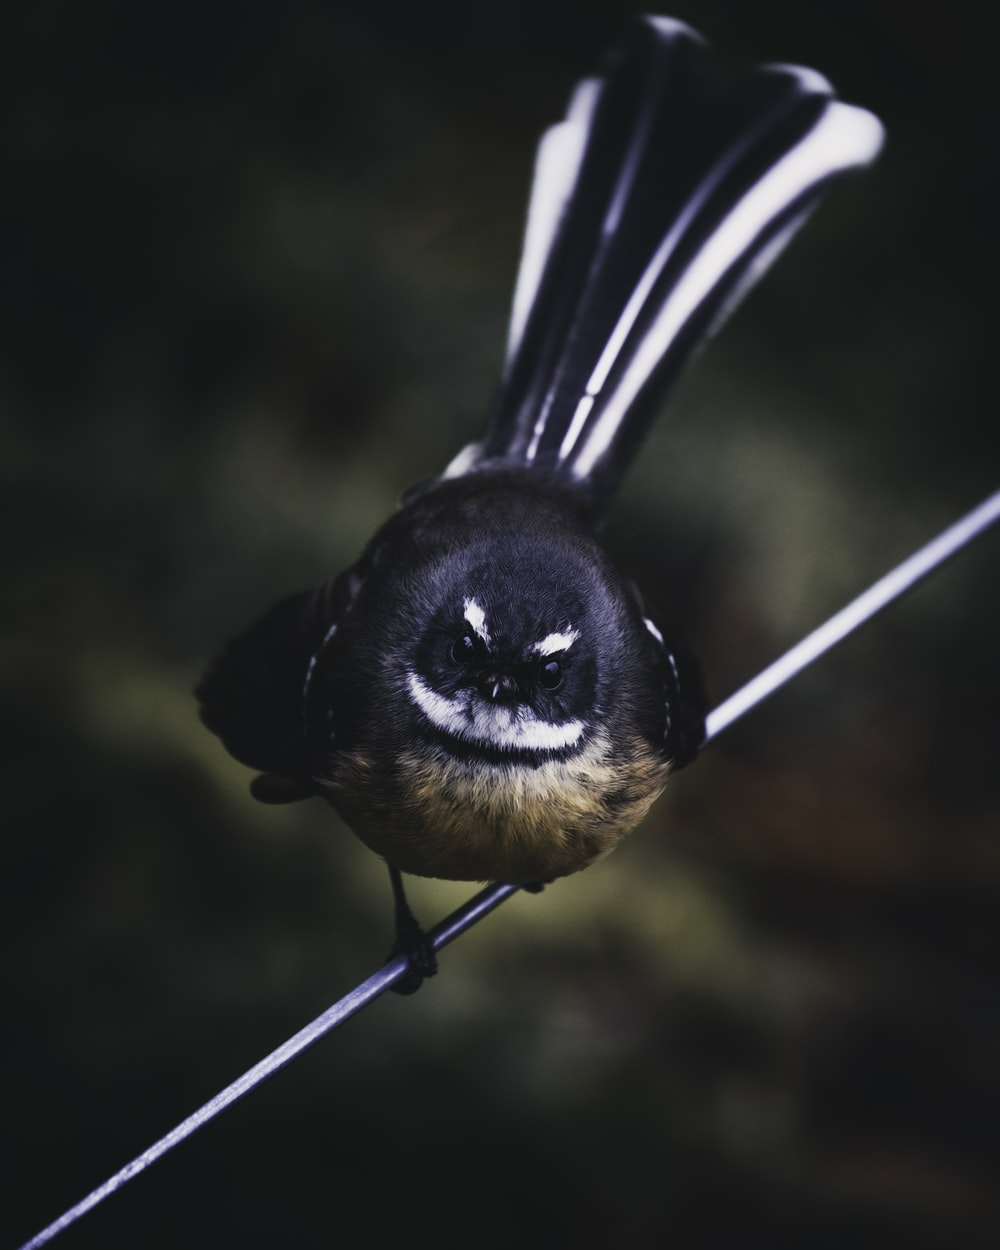 black and brown small beaked bird on white wire